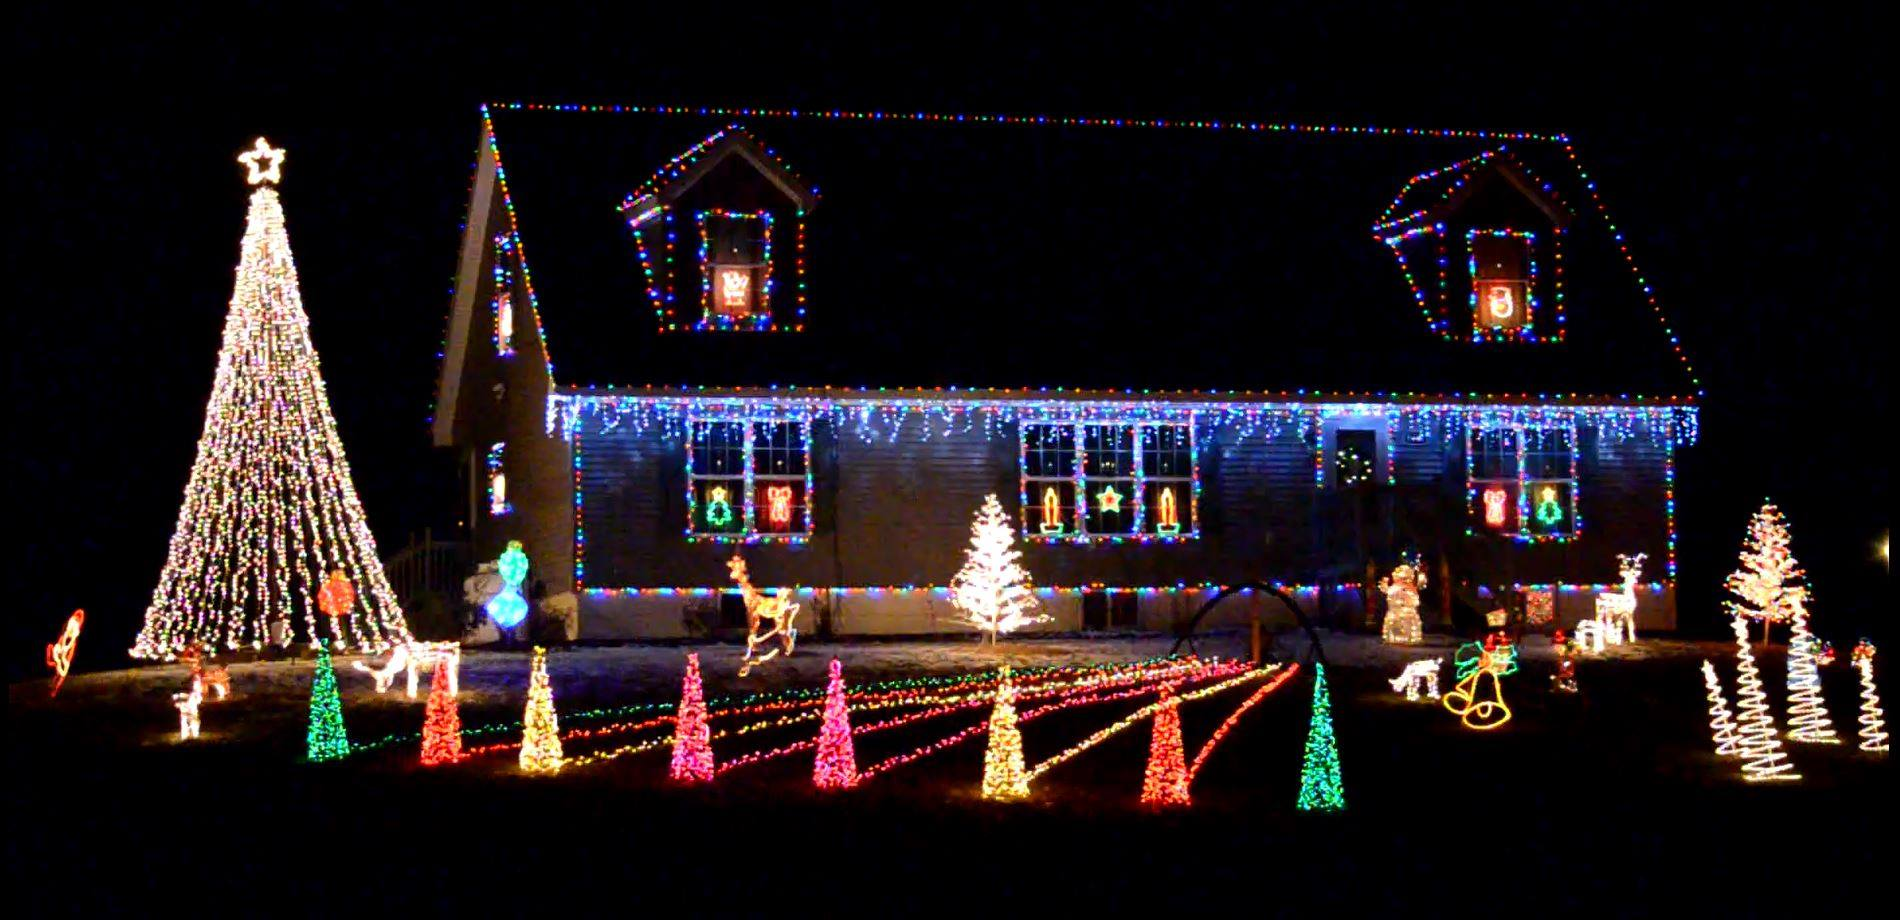 brian daigles residence puts on a light show every evening synchronized with 887 fm